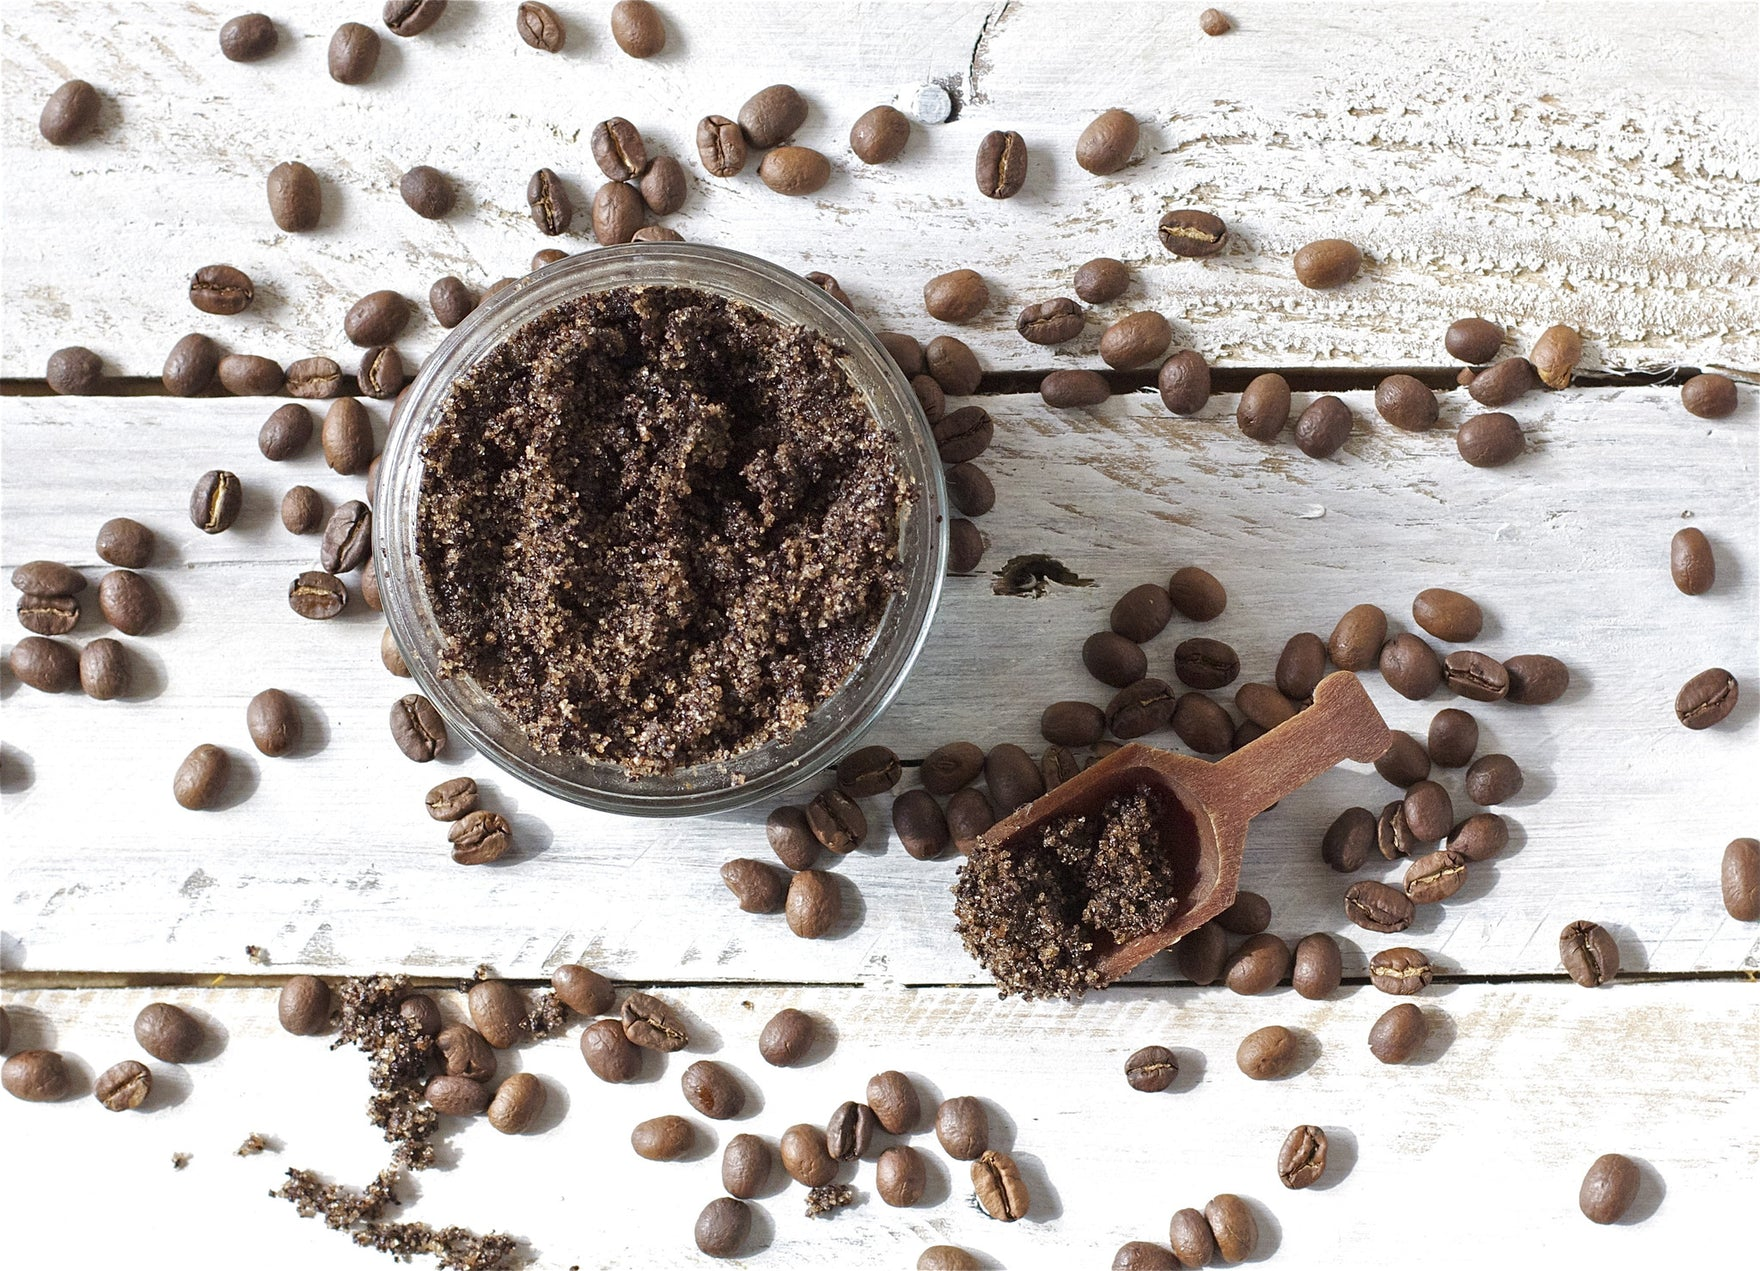 How to Get Rid of Cellulite with a DIY Coffee Scrub